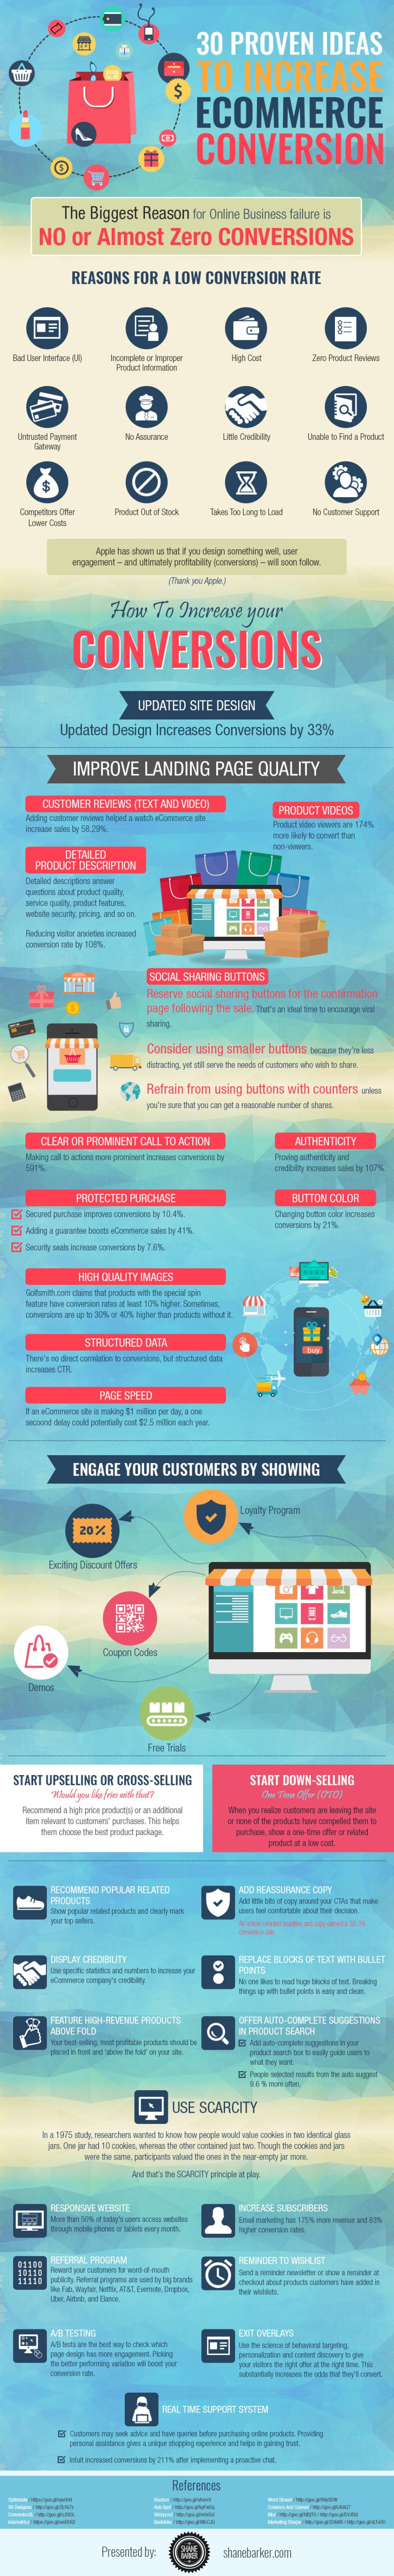 30 Ways To Increase Ecommerce Conversion Rates